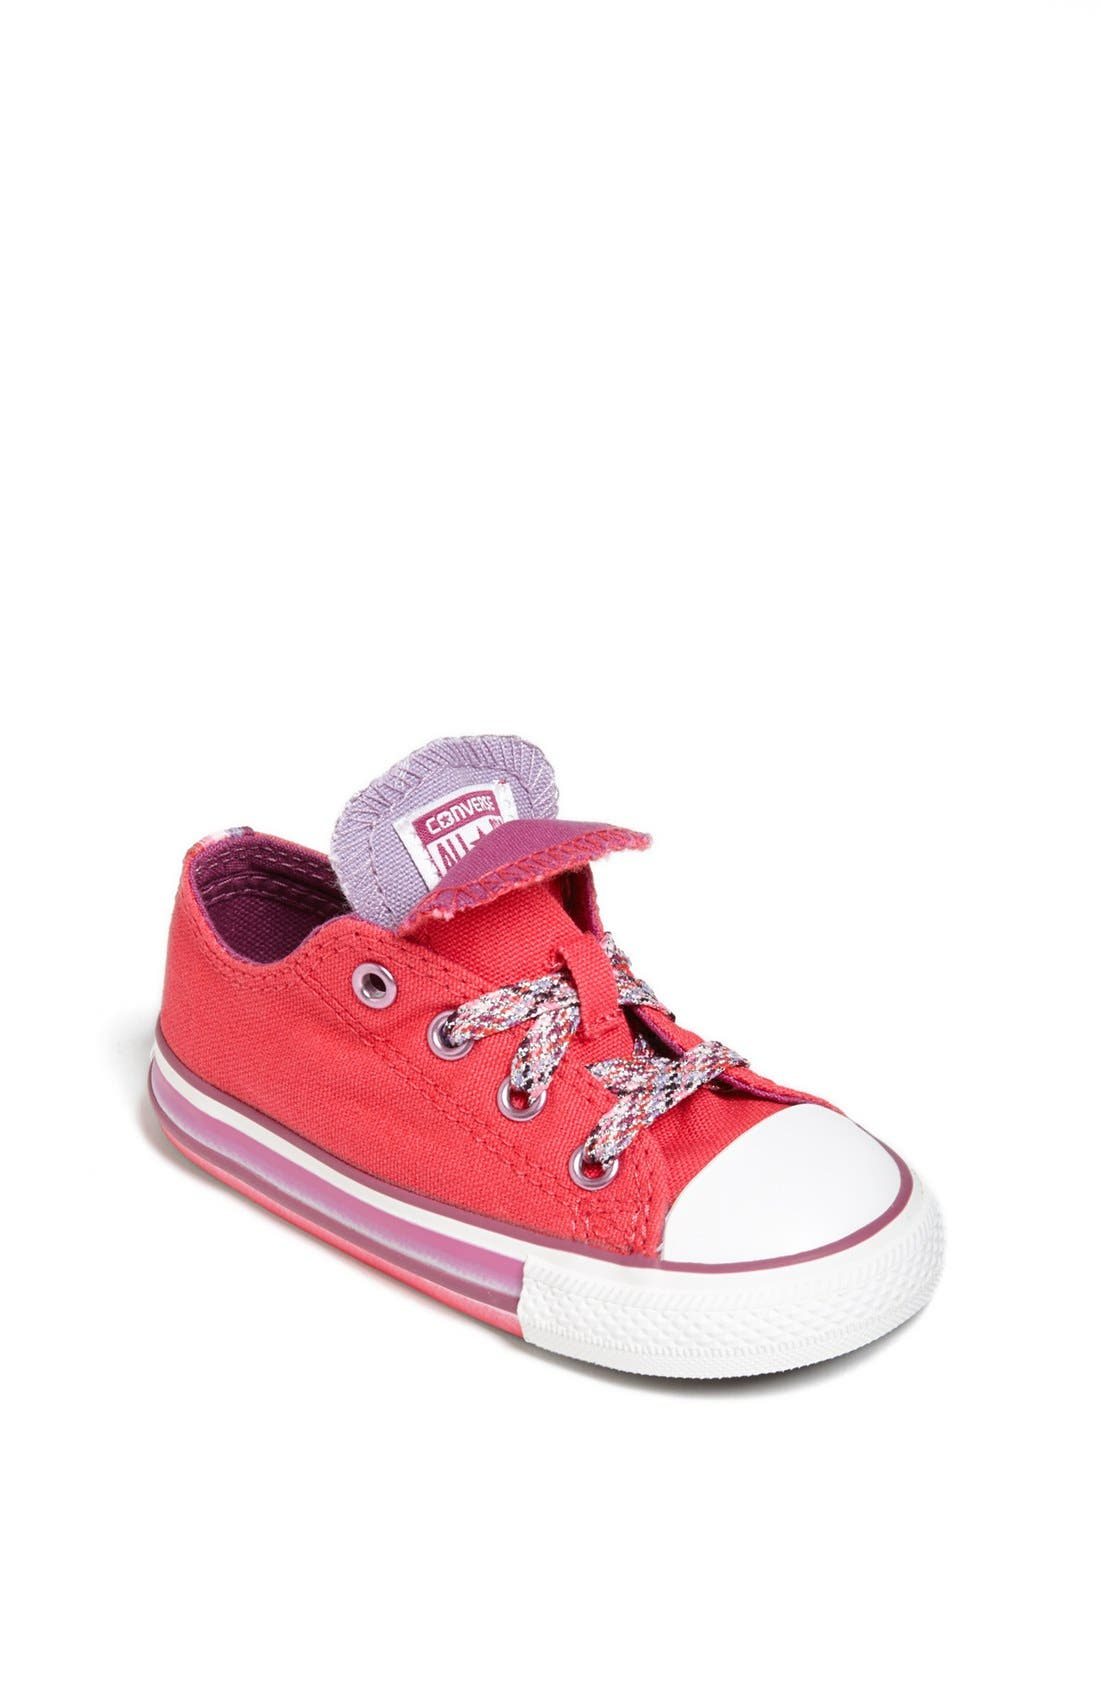 Main Image - Converse Double Tongue Sneaker (Baby, Walker & Toddler)